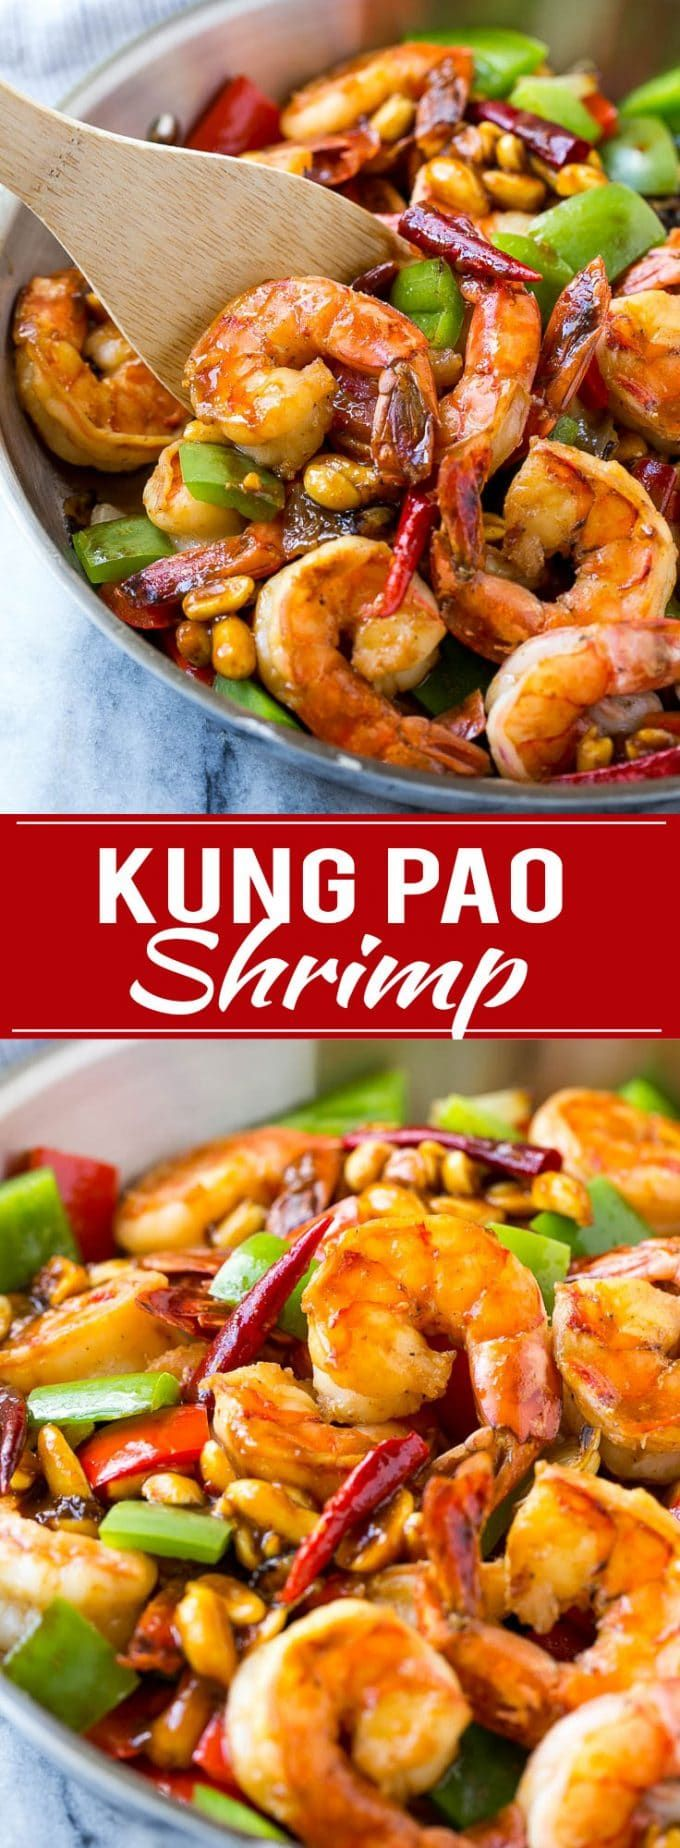 Kung Pao Shrimp  Shrimp Recipe  Shrimp Stir Fry  Easy Shrimp Recipe